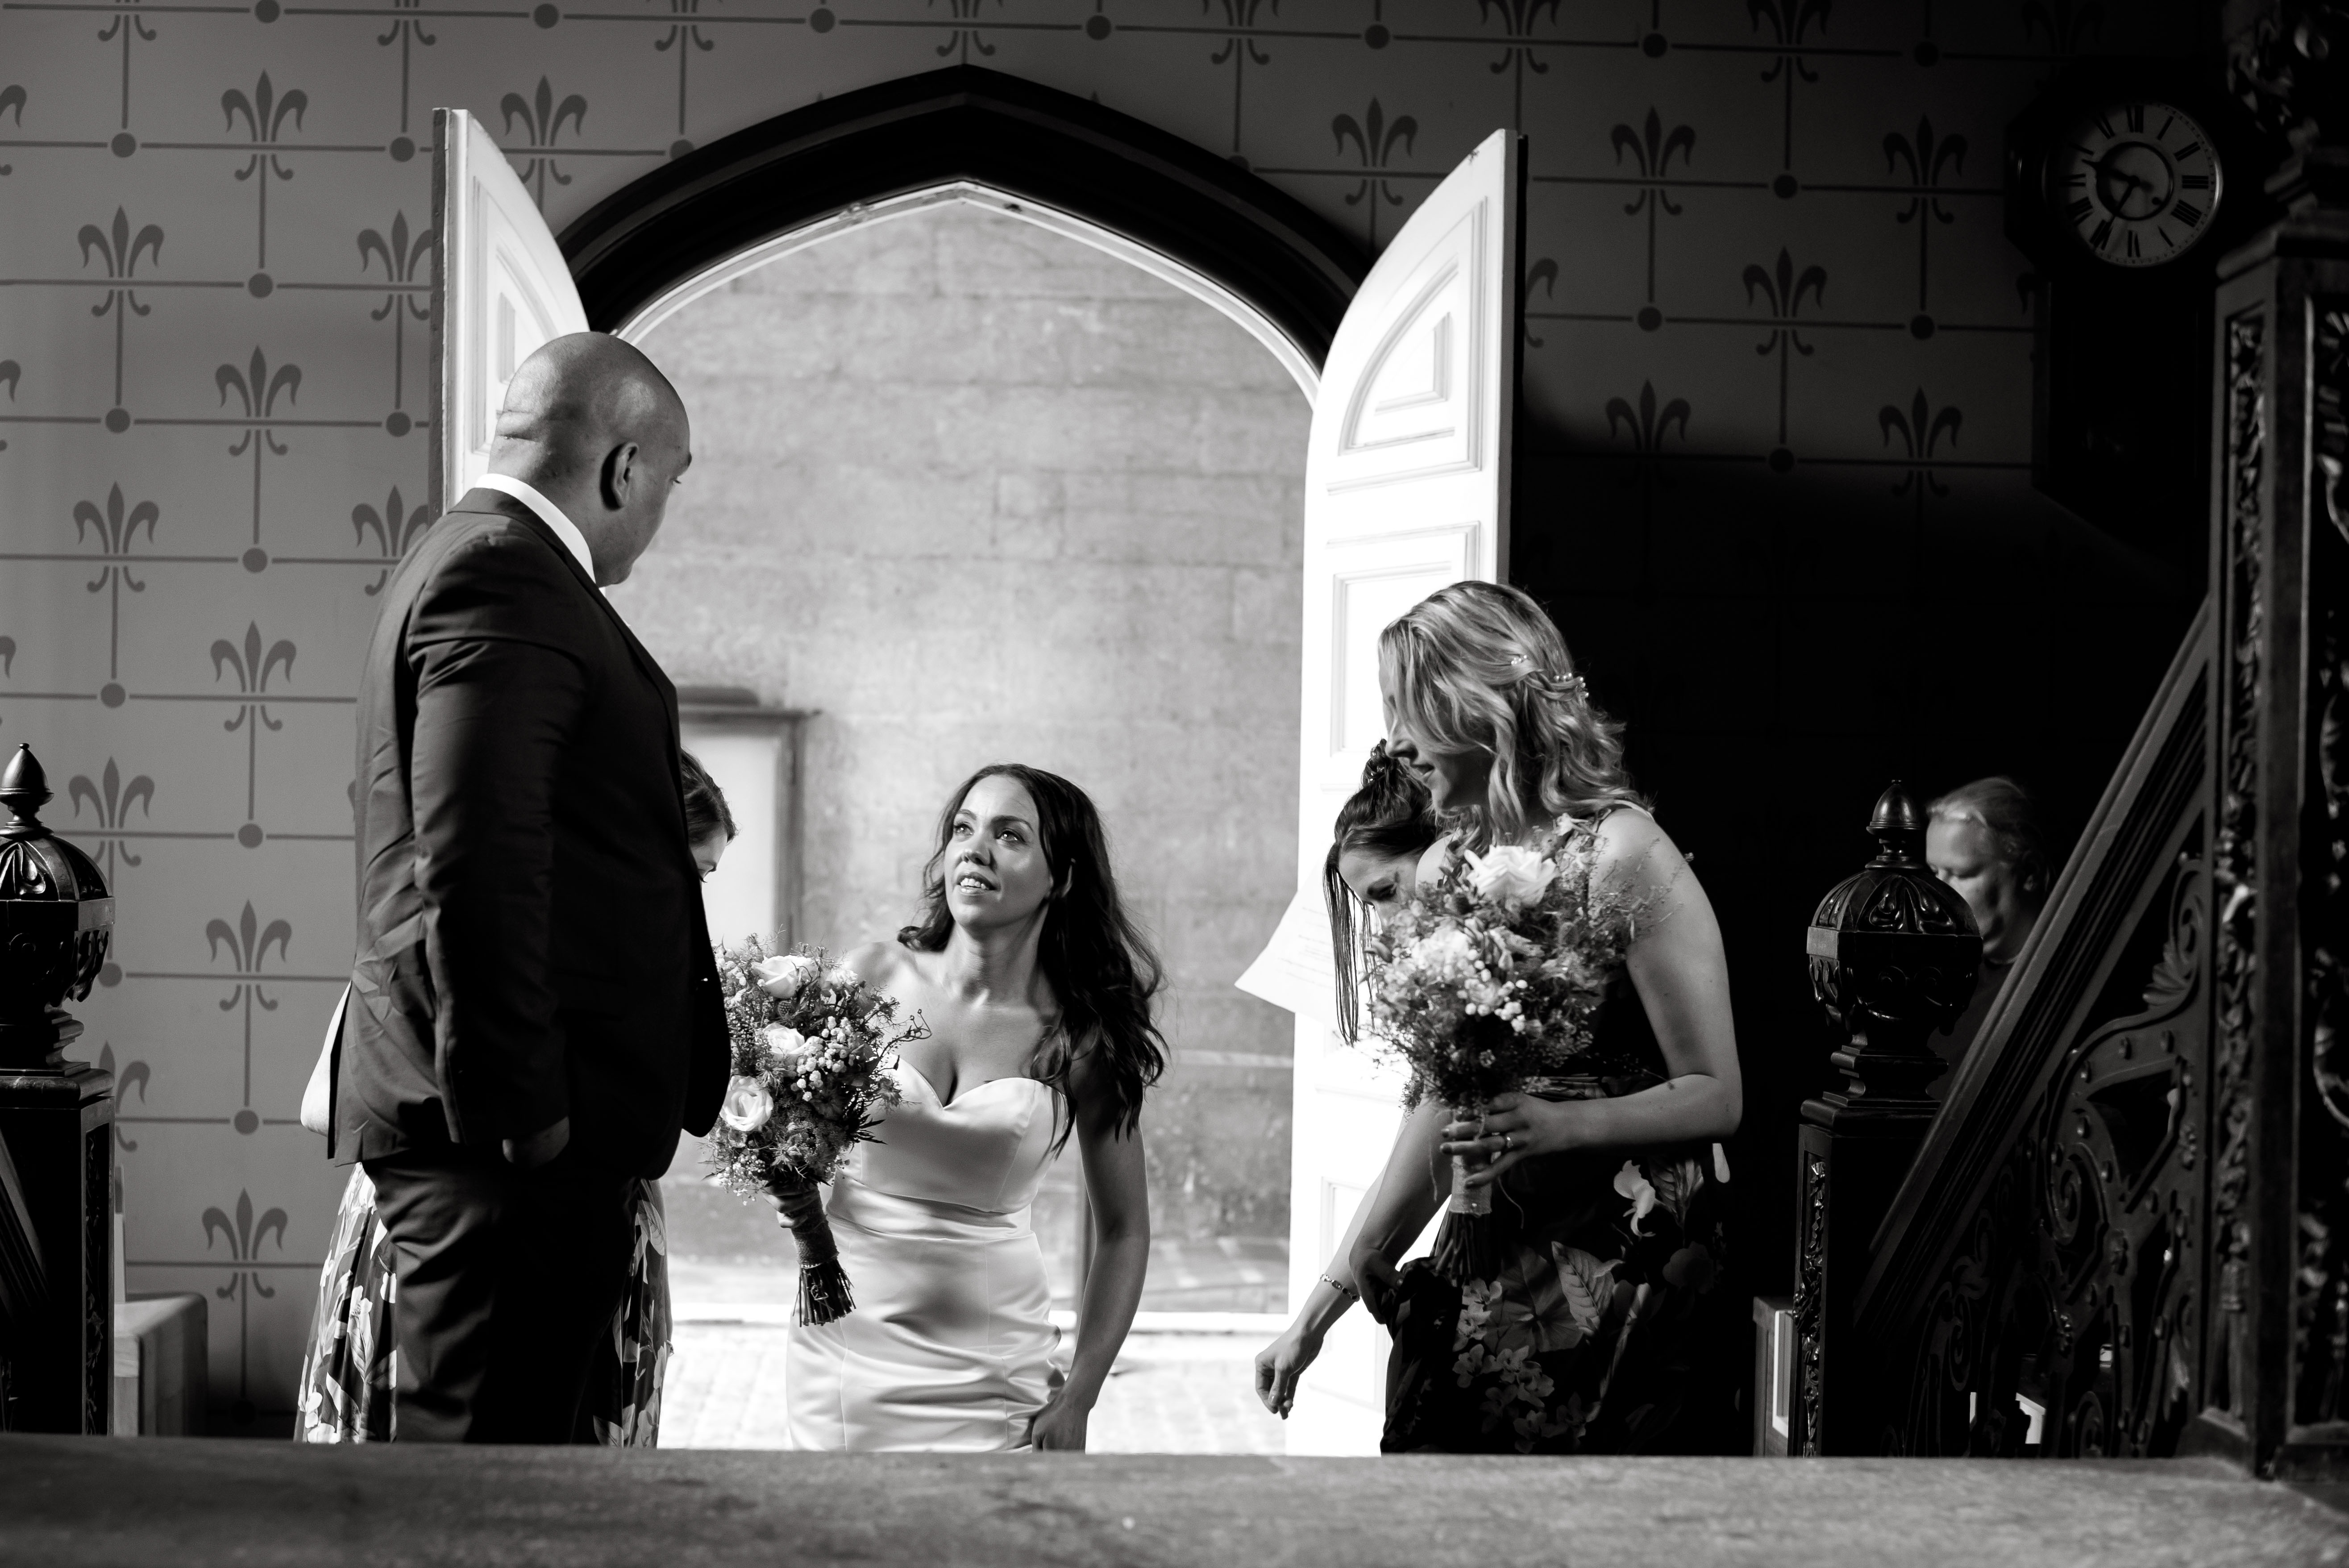 Wedding Photographer Denbighshire. The bride arriving at the wedding ceremony.